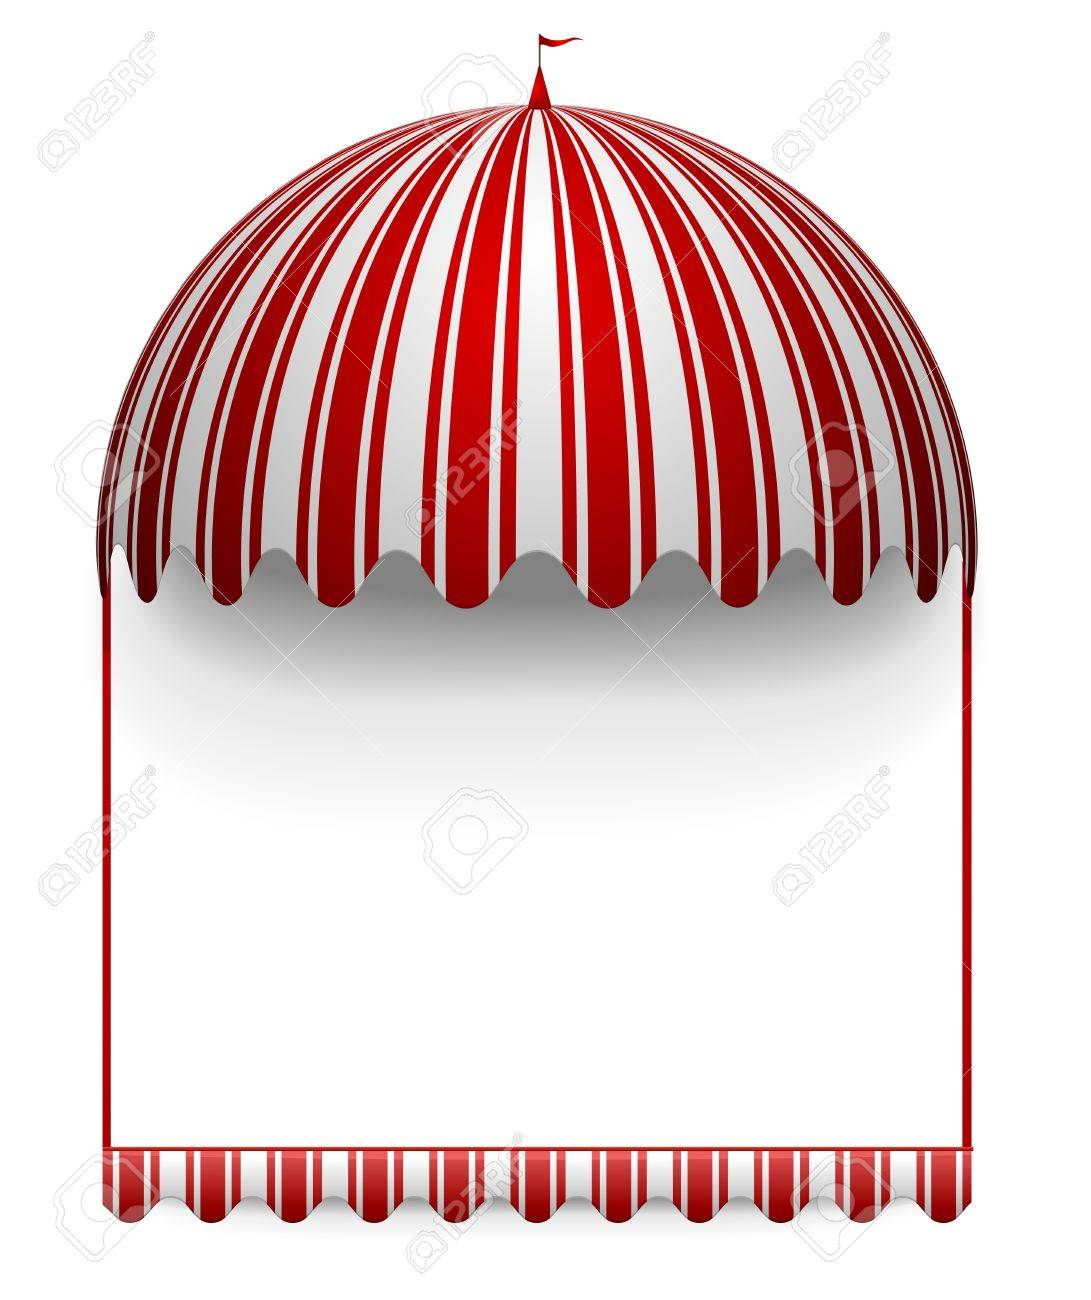 detailed illustration of a carnivals frame with a round circus awning on top - 21593596